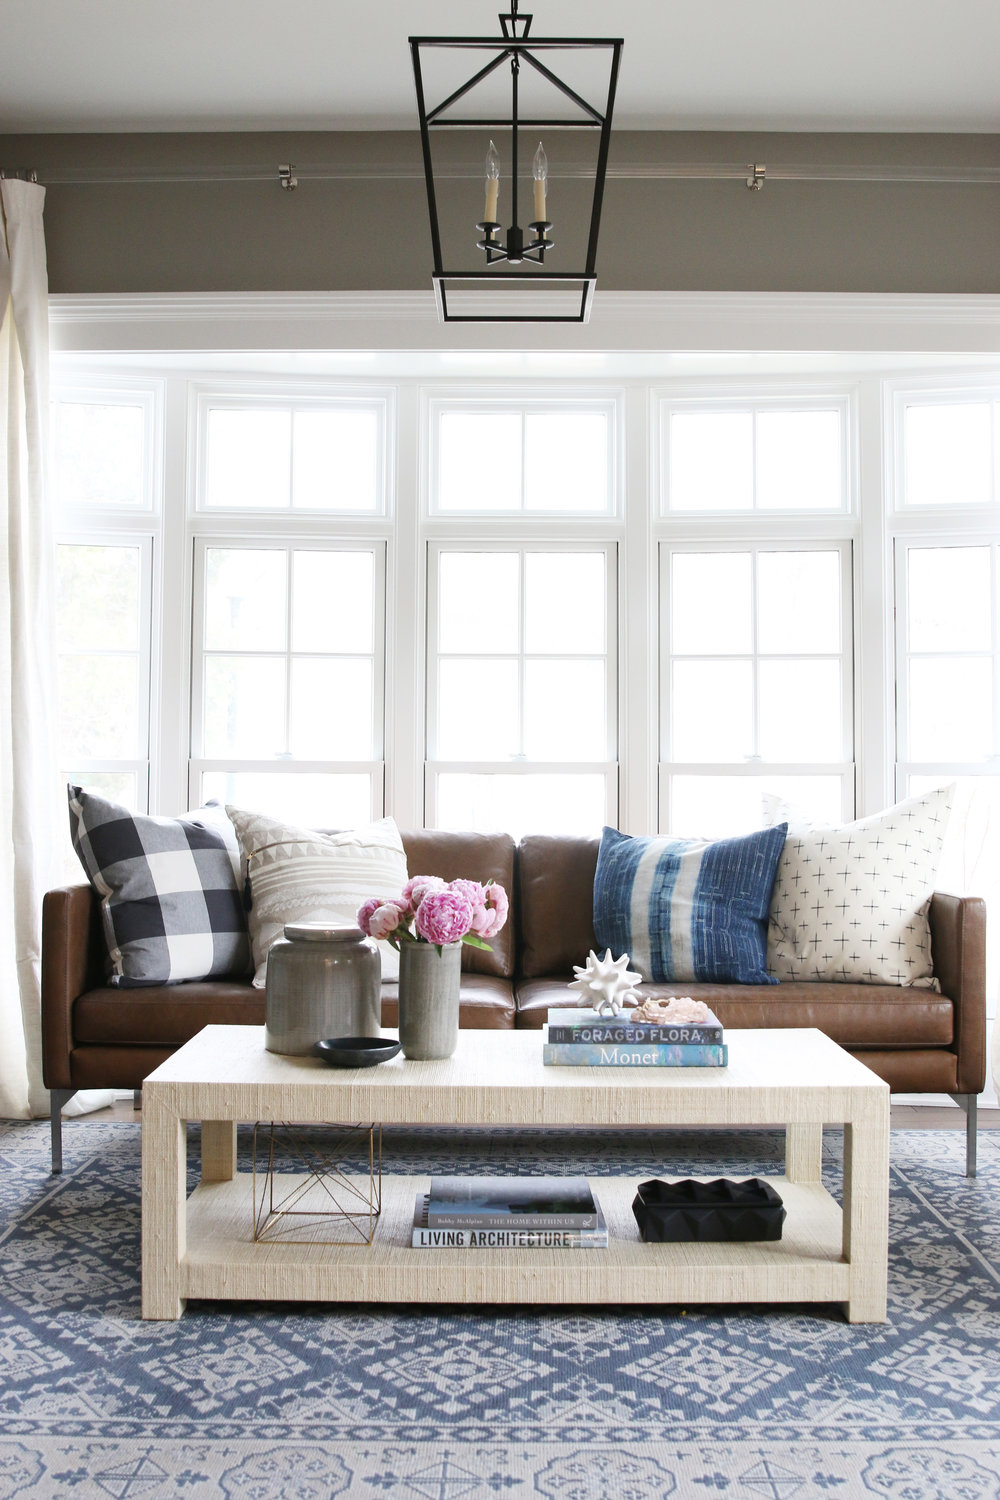 White coffee table in front of brown sofa